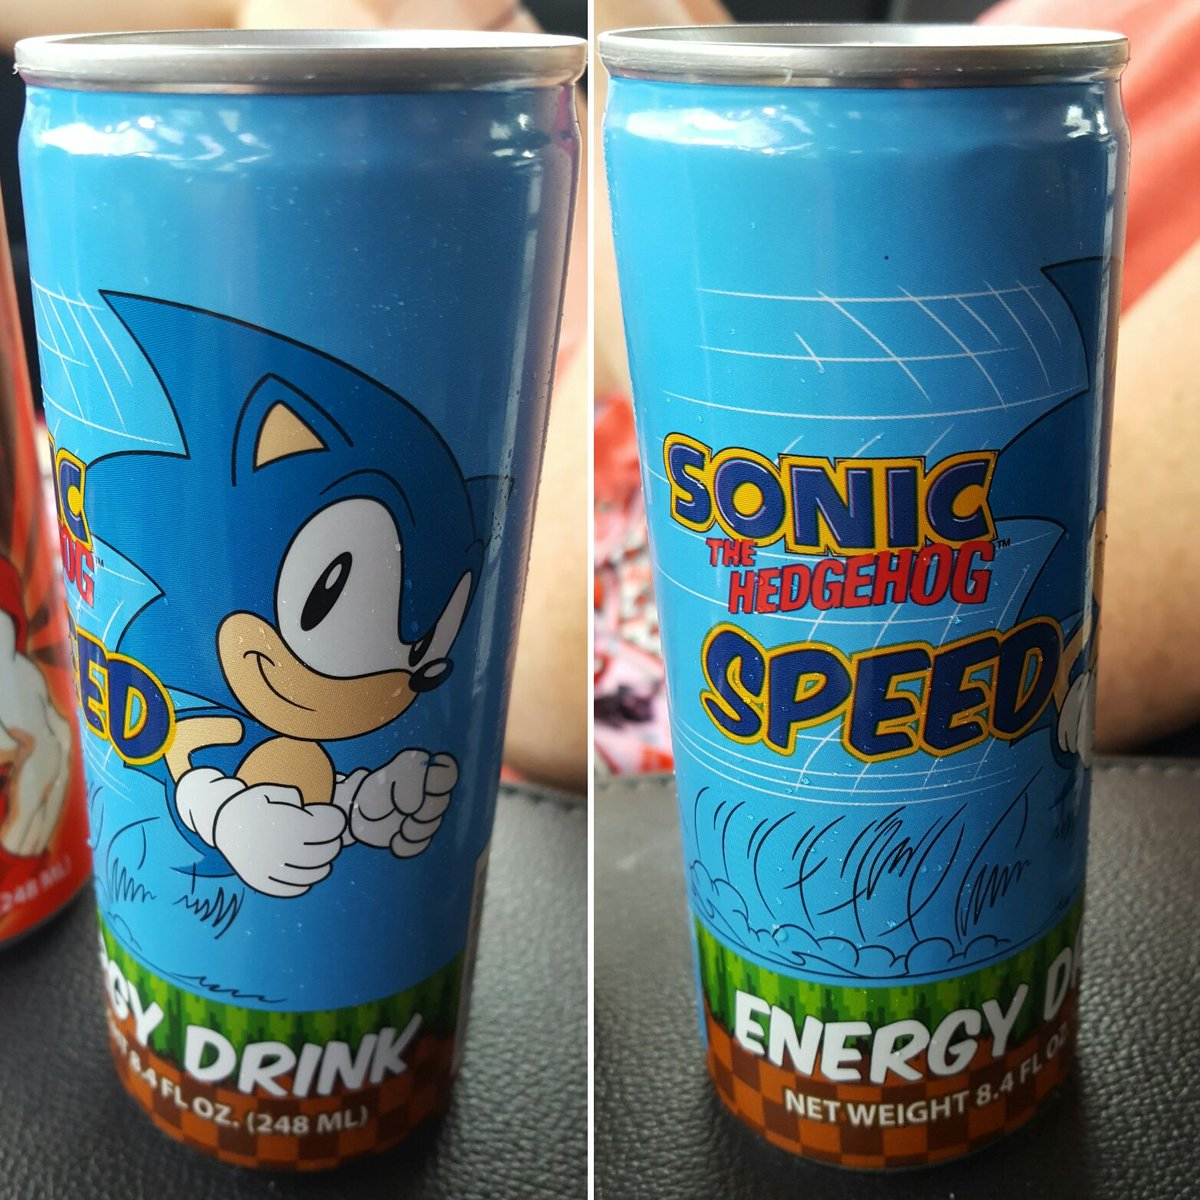 The drink of choice for those like @egoraptor who 'GOTTA GO FAST' through a bad game! @GameGrumps https://t.co/xk3TGAWNAN